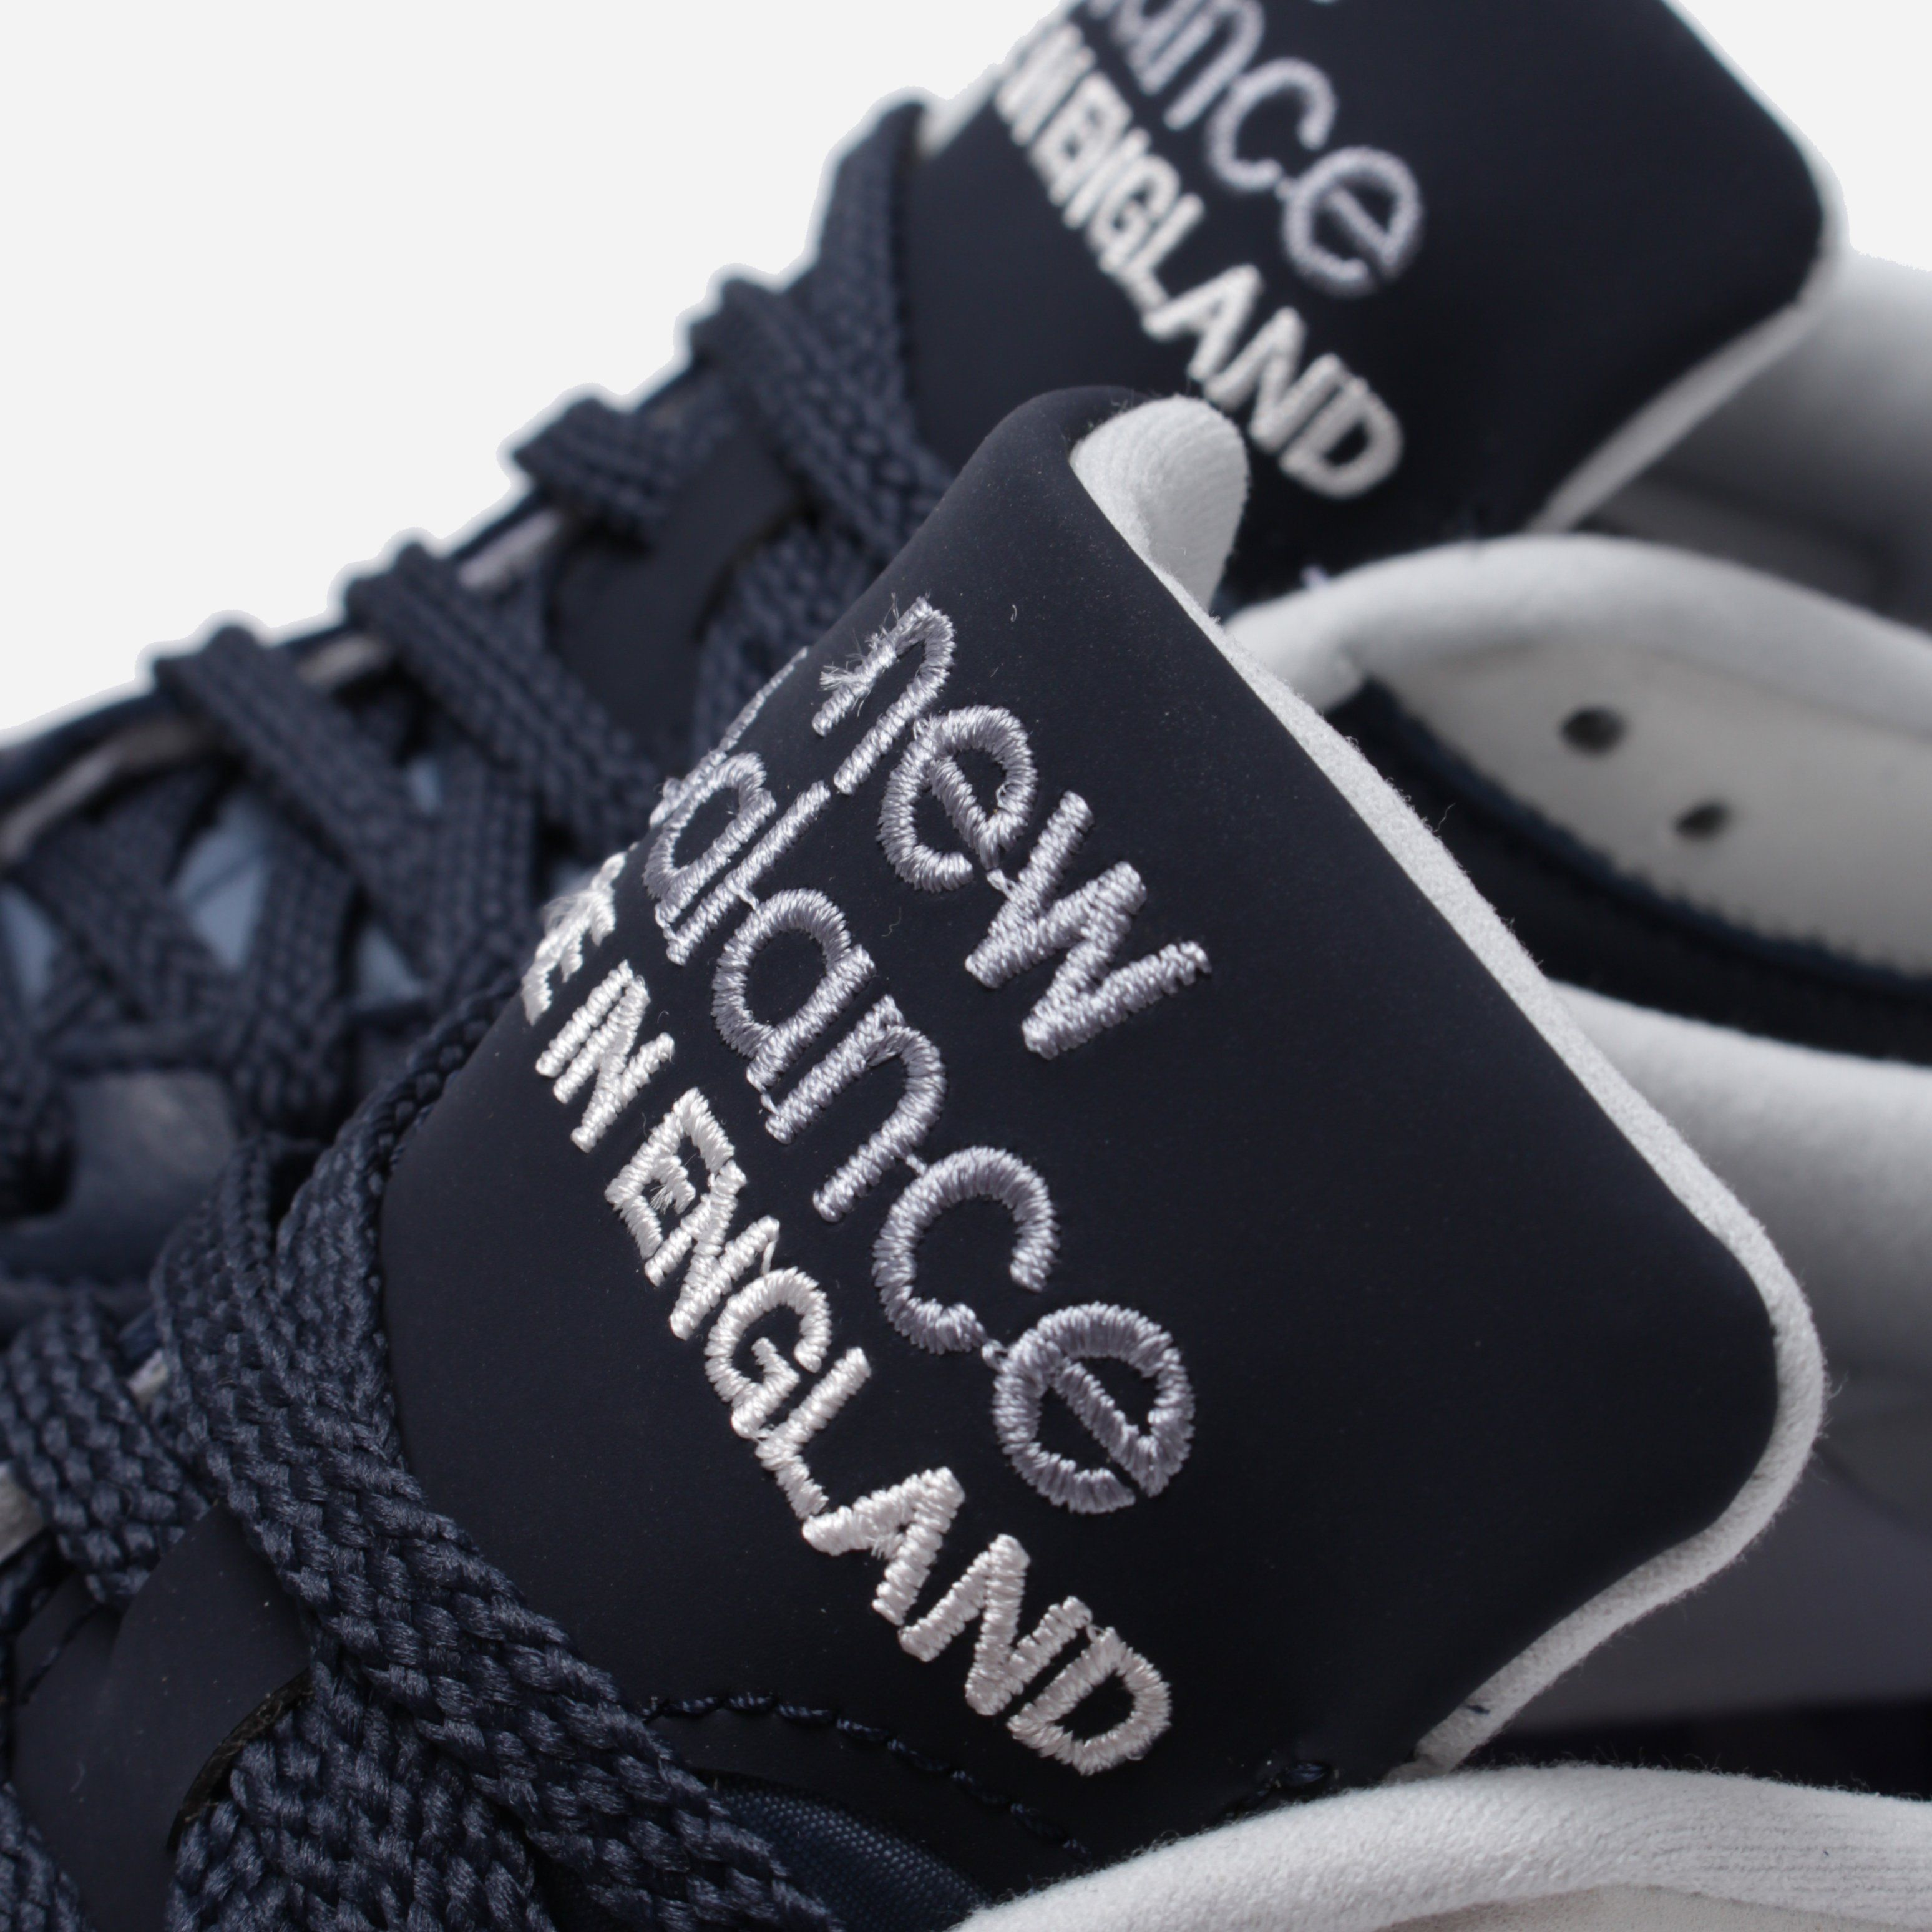 New Balance M 1500 LP Made in England